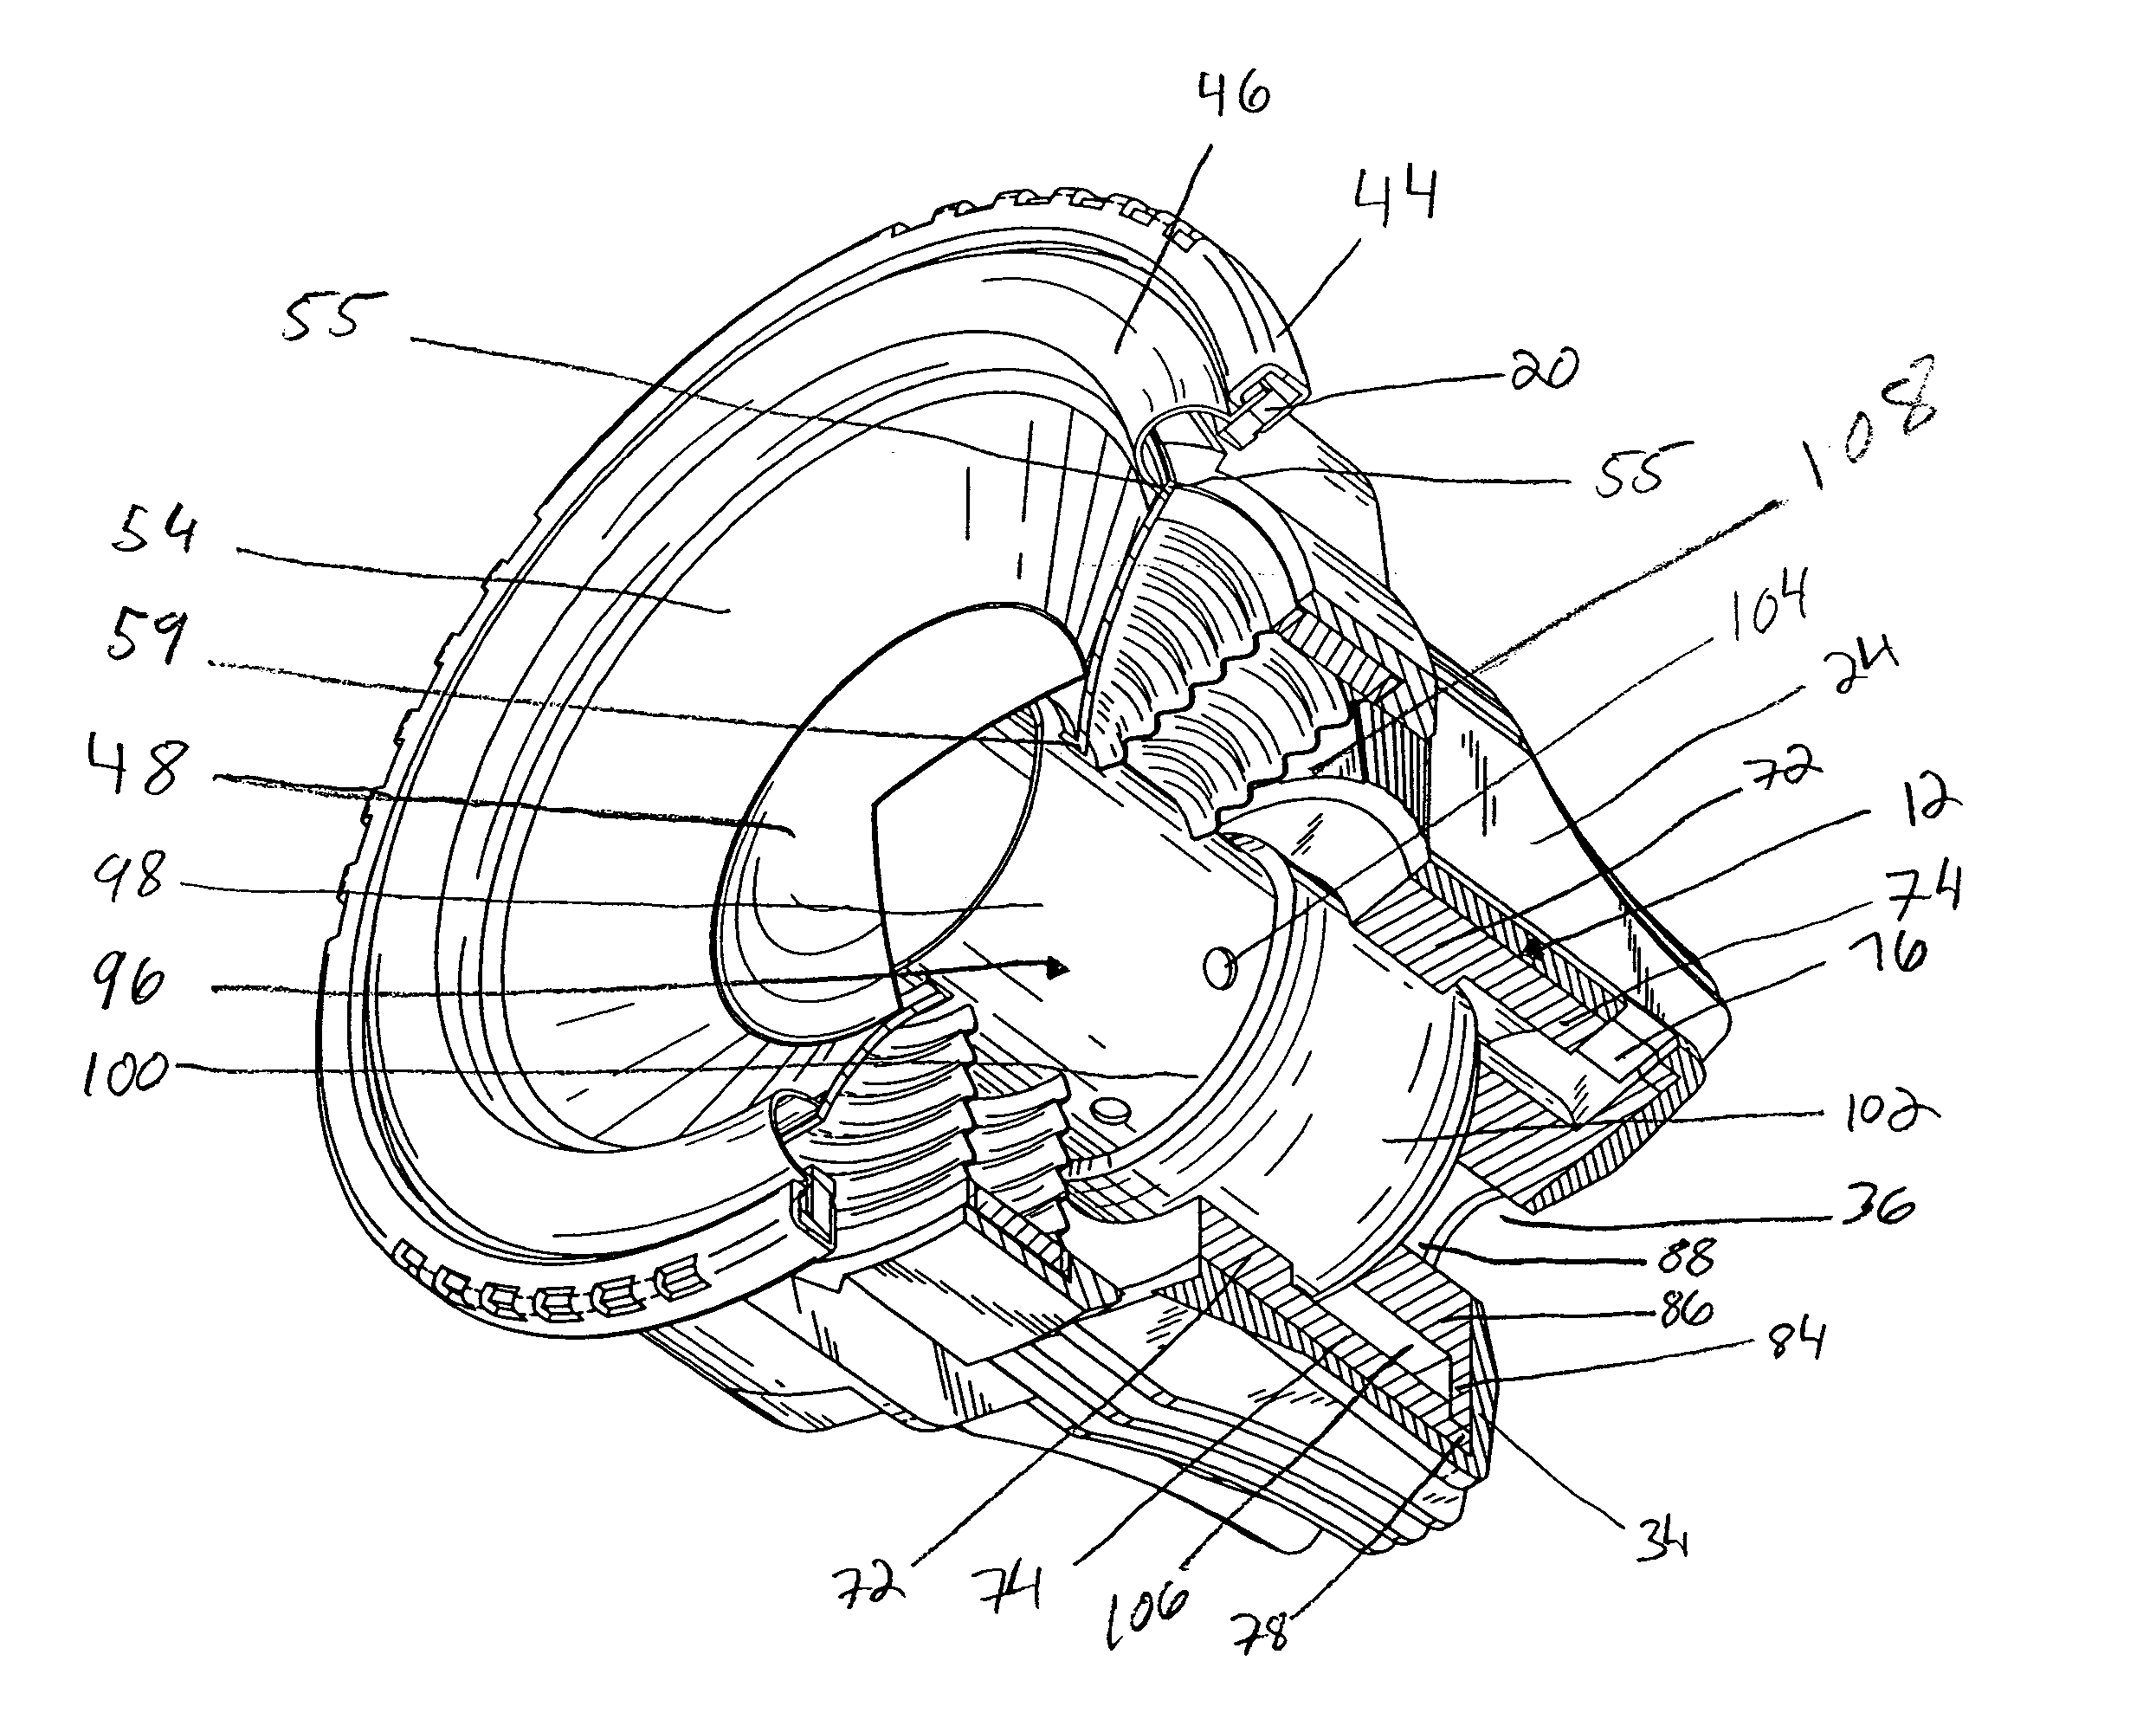 us7088841 subwoofer patents on surround sound subwoofer Composite Input to HDMI Wiring us7088841 subwoofer patents on surround sound subwoofer us7088841 subwoofer patents on surround sound subwoofer wiring